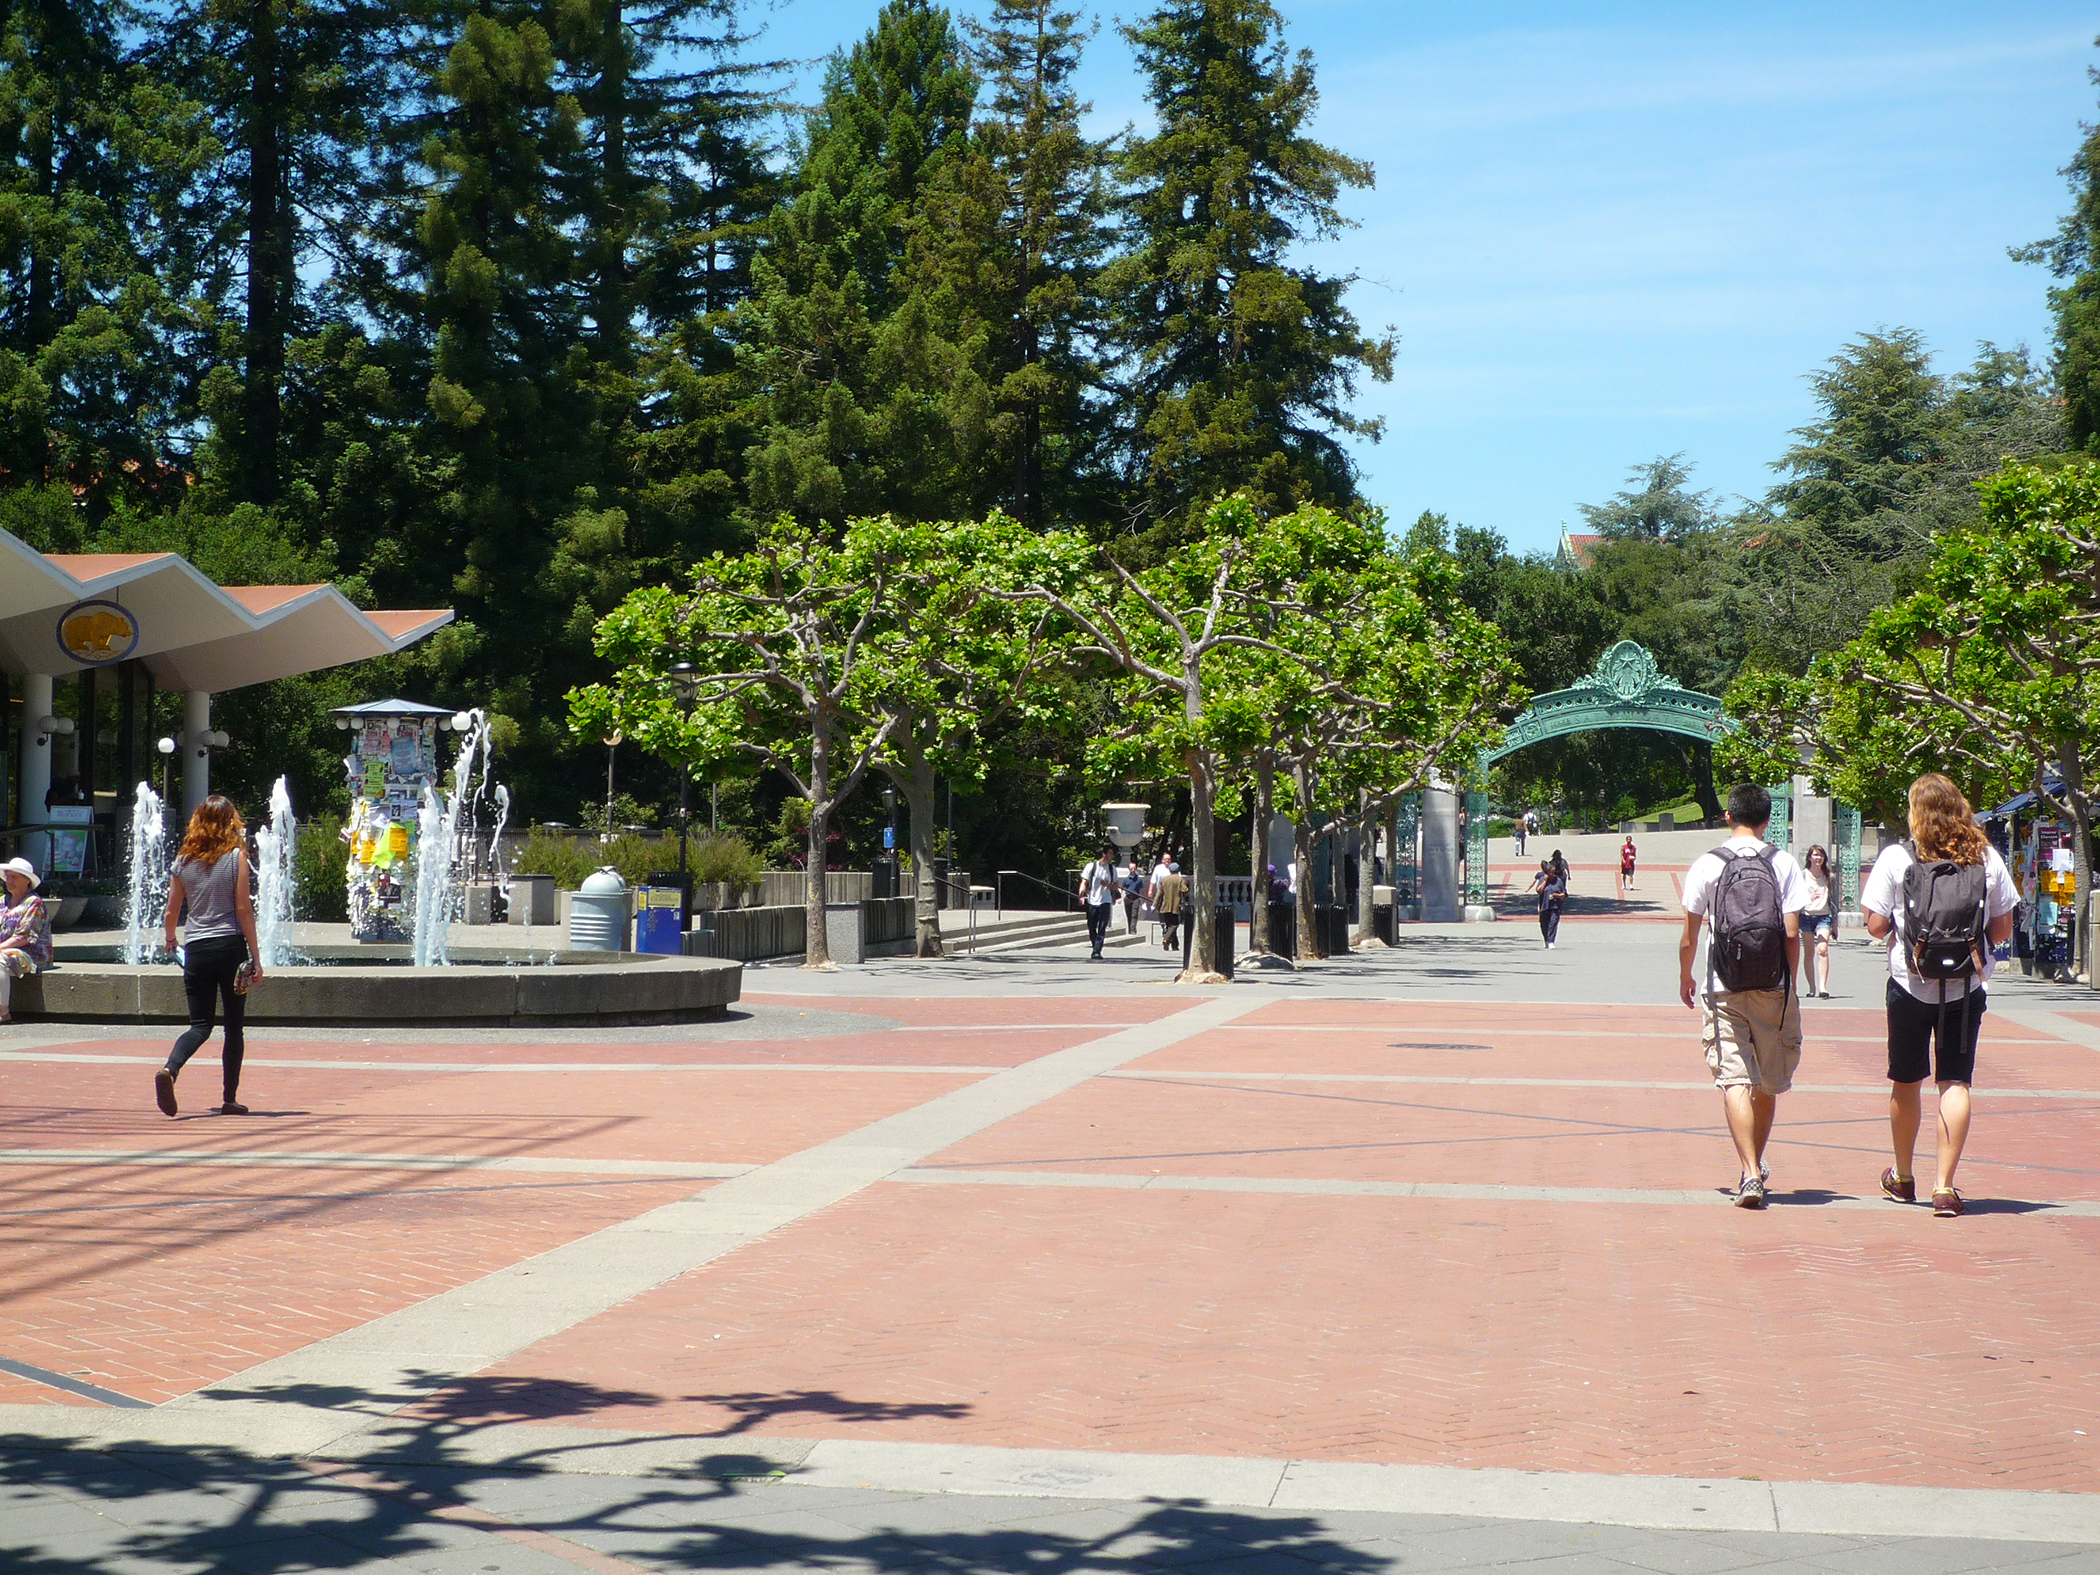 Students walking on Sproul Plaza, Sather Gate in back, University of California-Berkeley